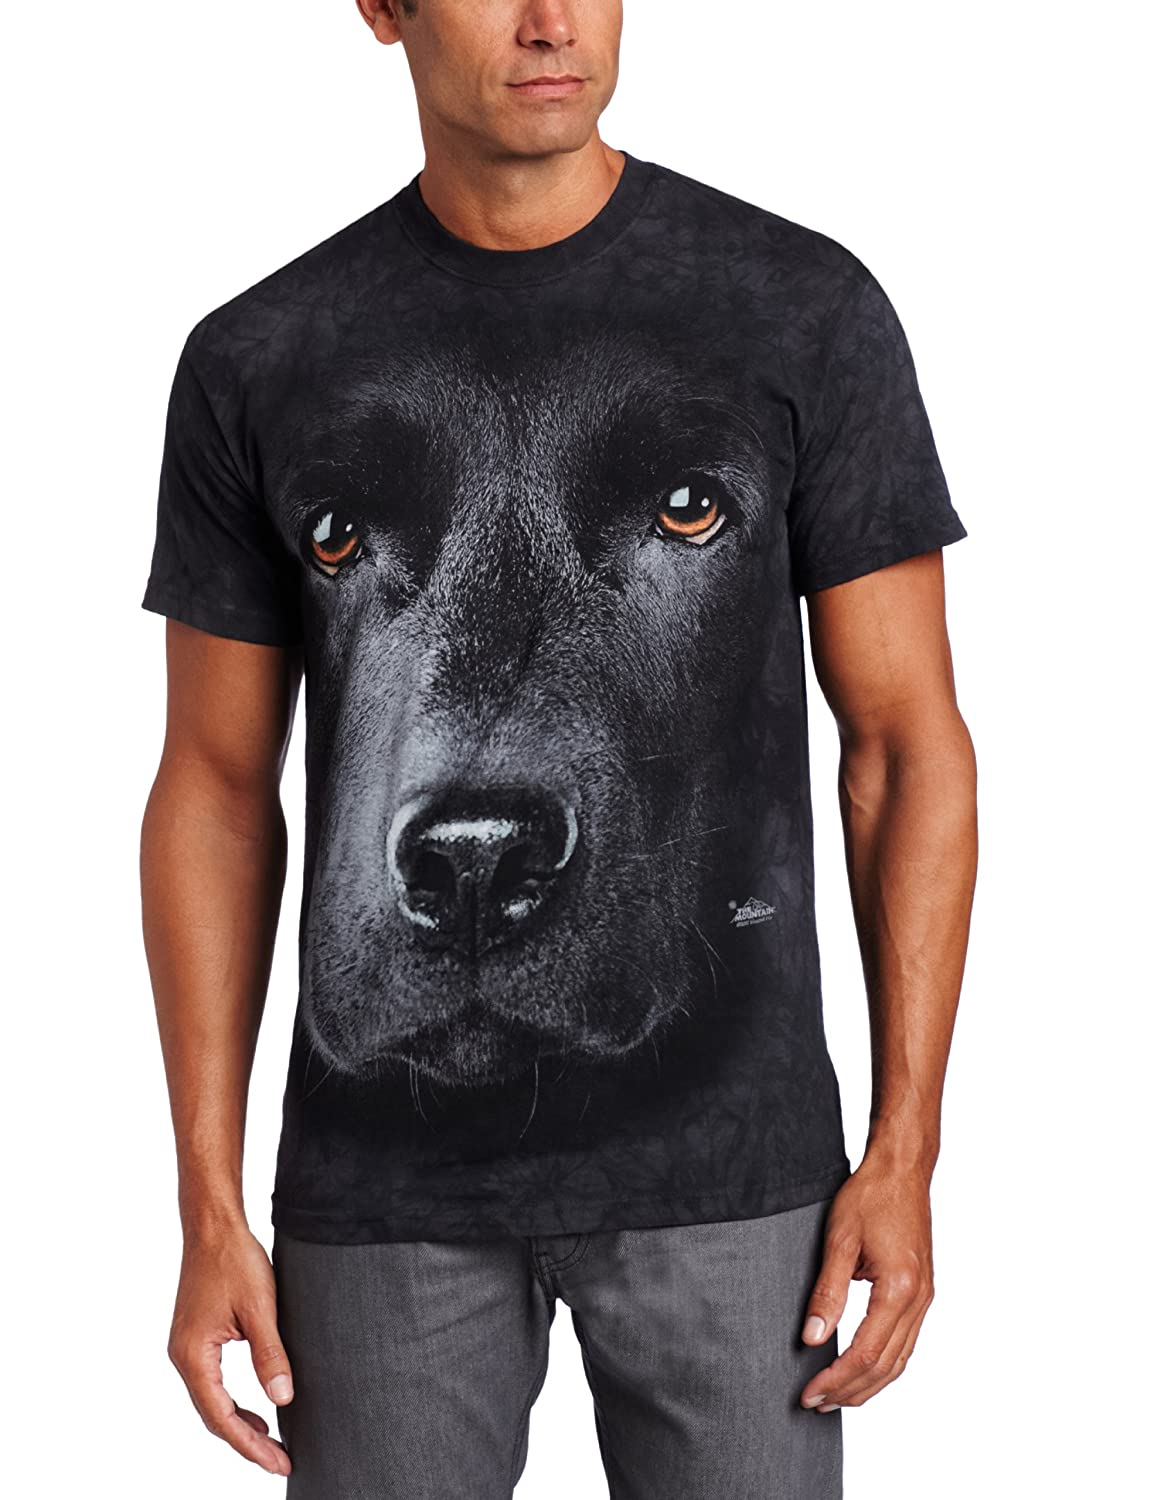 Black t shirt man - Amazon Com The Mountain Unisex Adult Black Lab Face Short Sleeve T Shirt Clothing